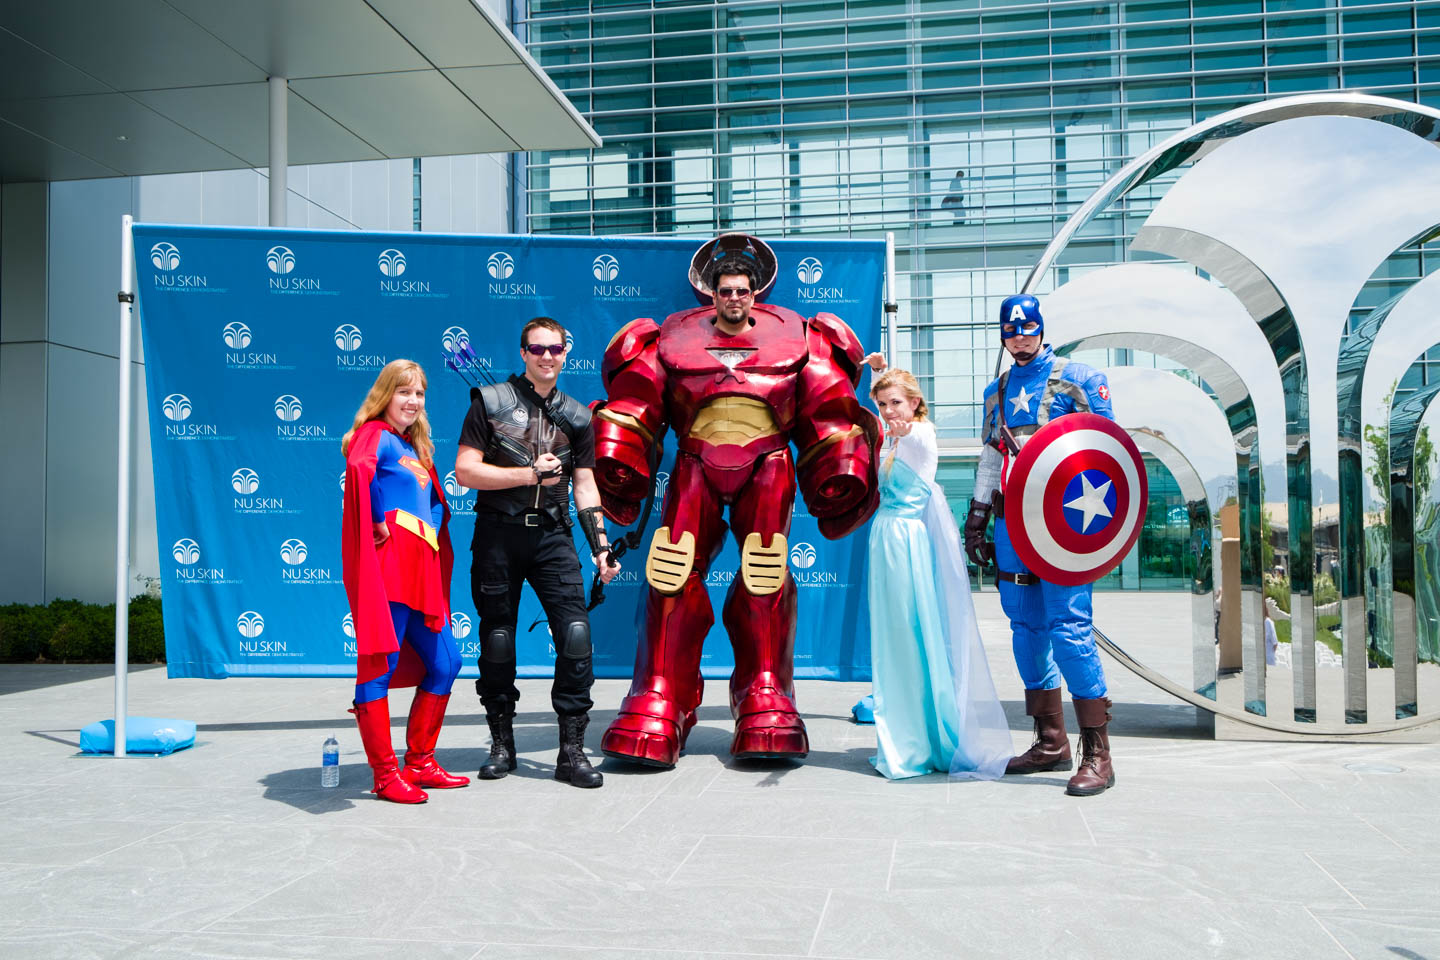 Cos Play Characters show support including supergirl, hulk buster, hawkeye, captain america and a Frozen princess